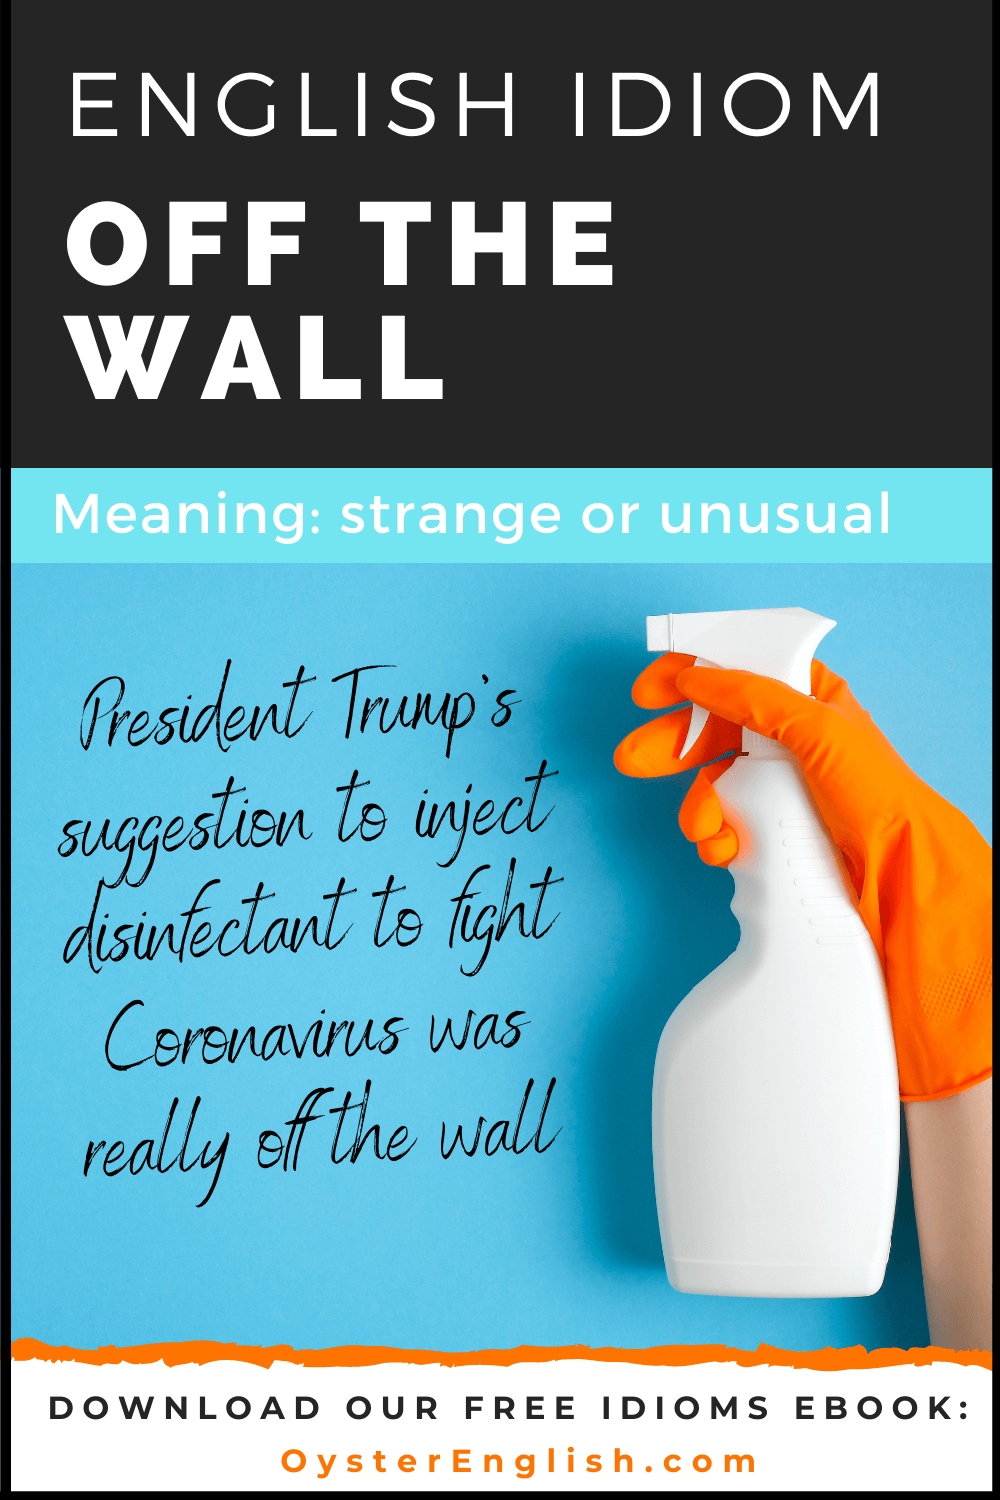 Photo of a hand wearing a plastic cleaning glove and holding a bottle of disinfectant cleaner: President Trump's suggestion to inject disinfectant to fight Coronavirus was really off the wall.